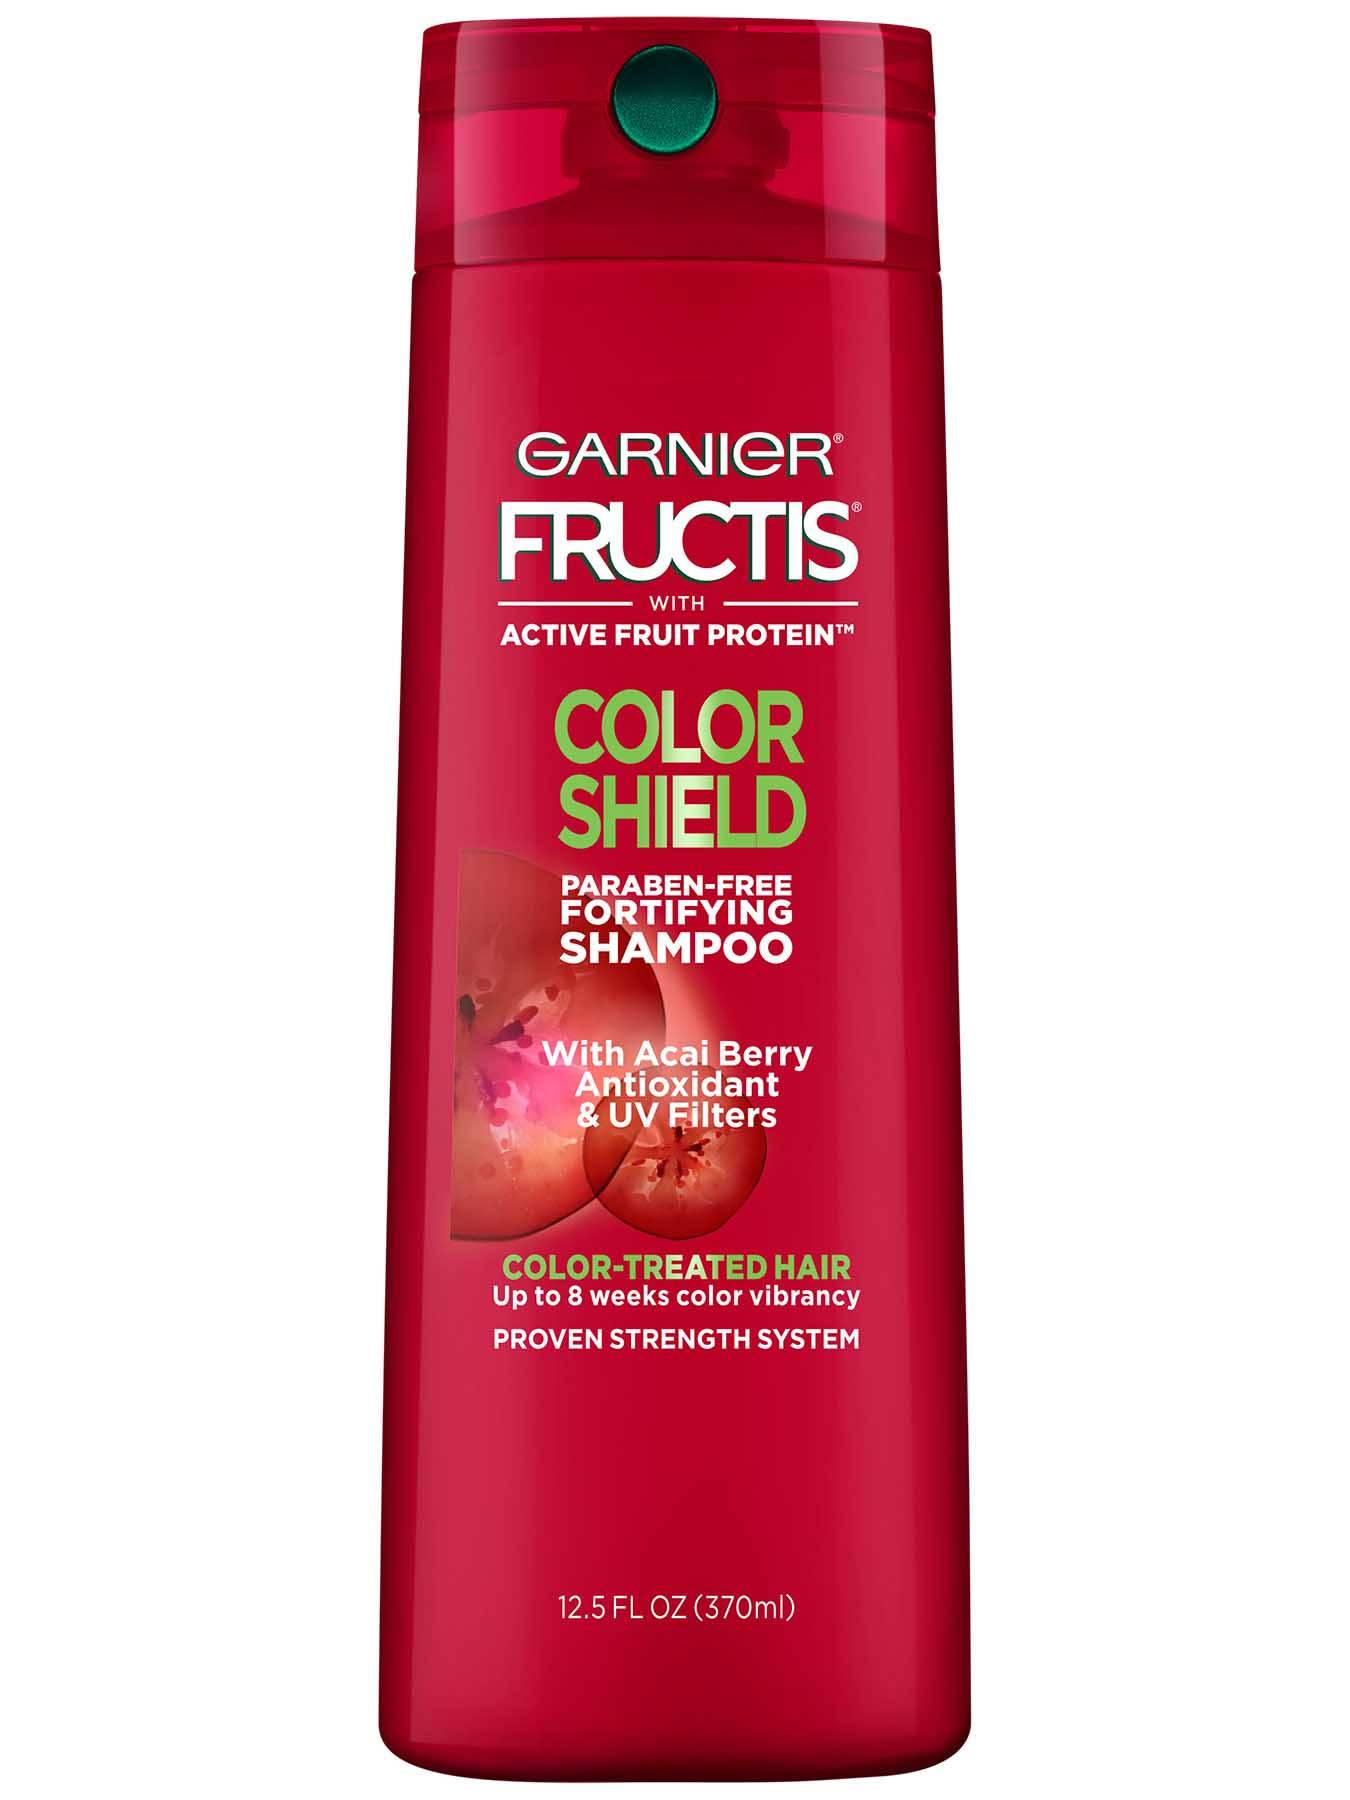 Color Shield Shampoo for Colored Hair - Garnier Fructis